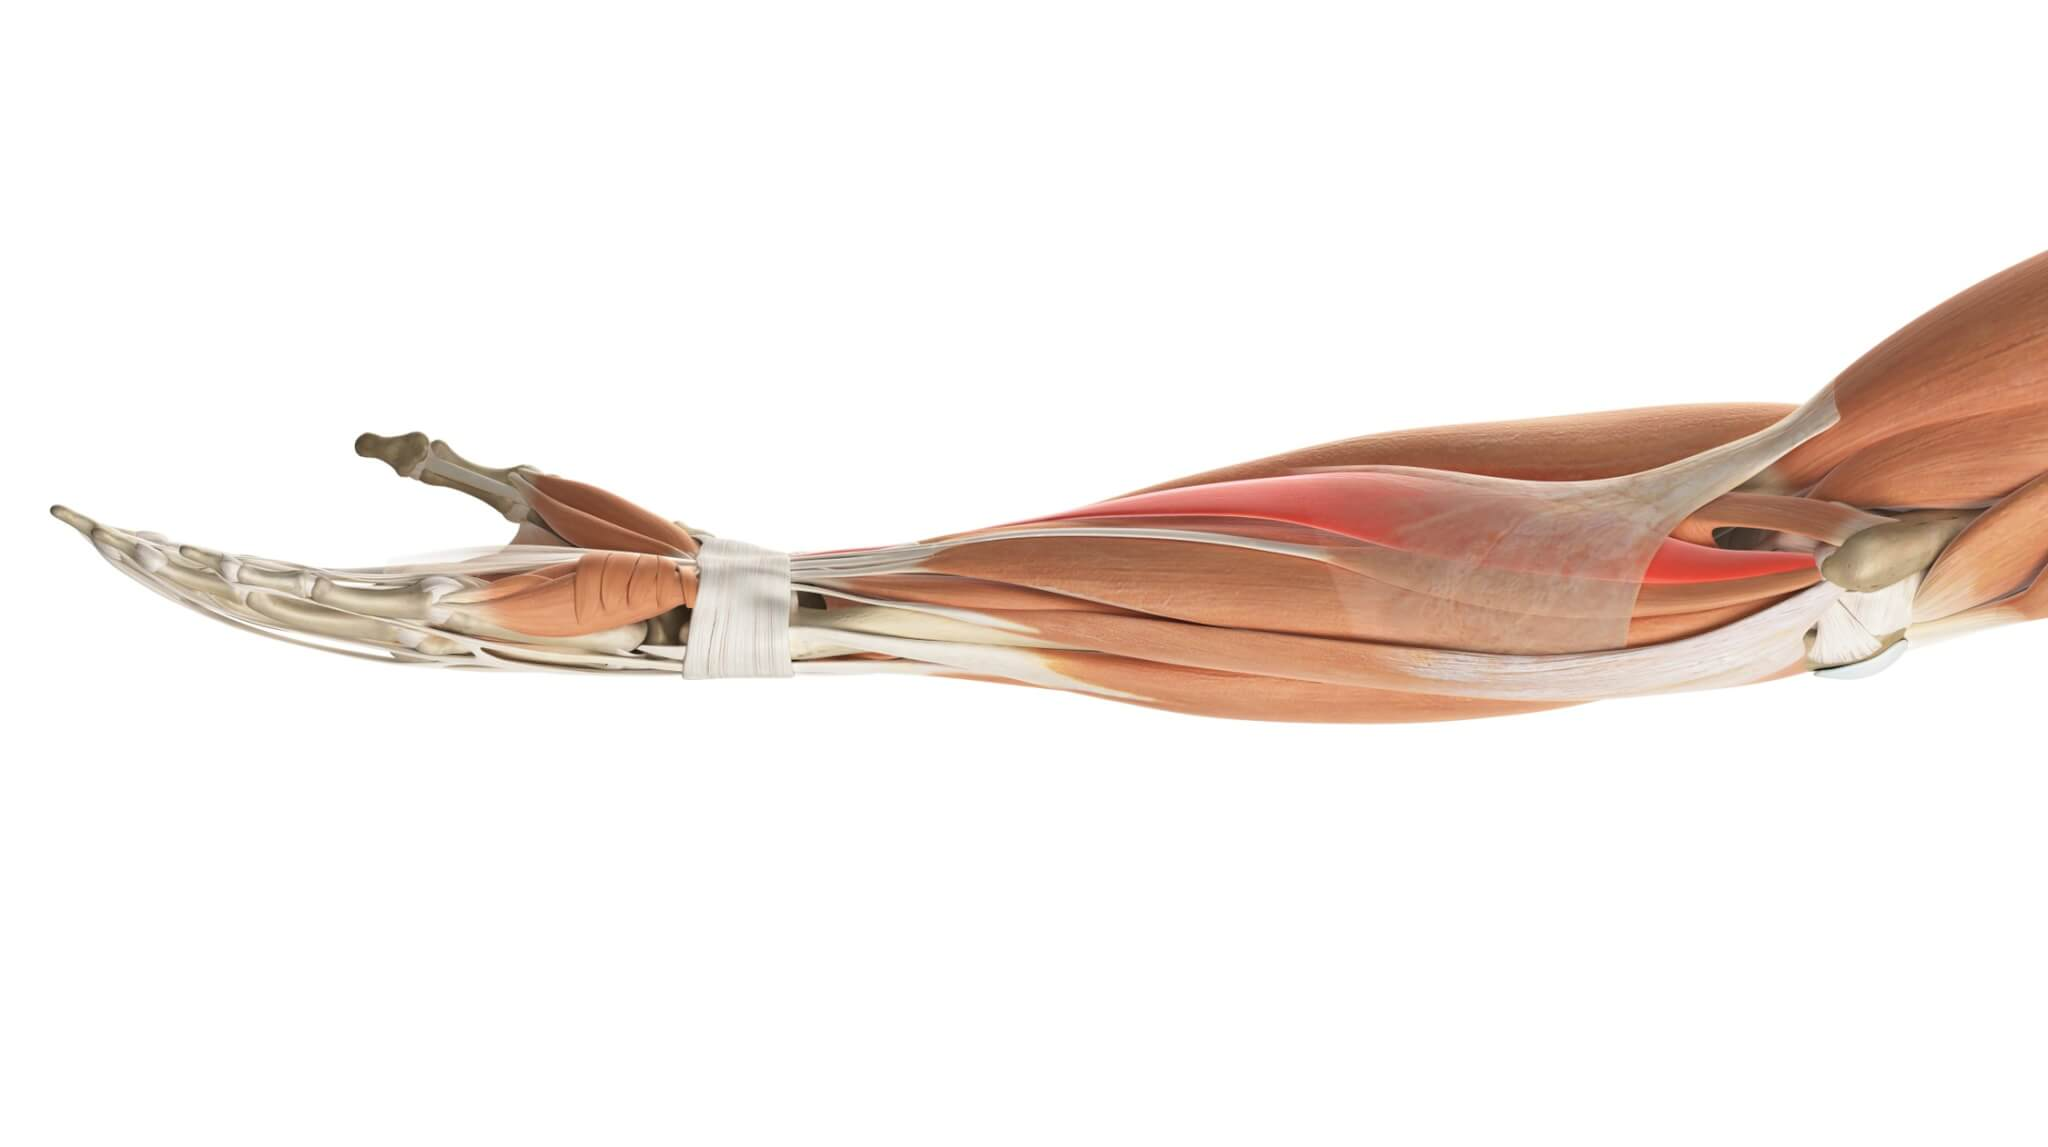 Medial aspect of right forearm